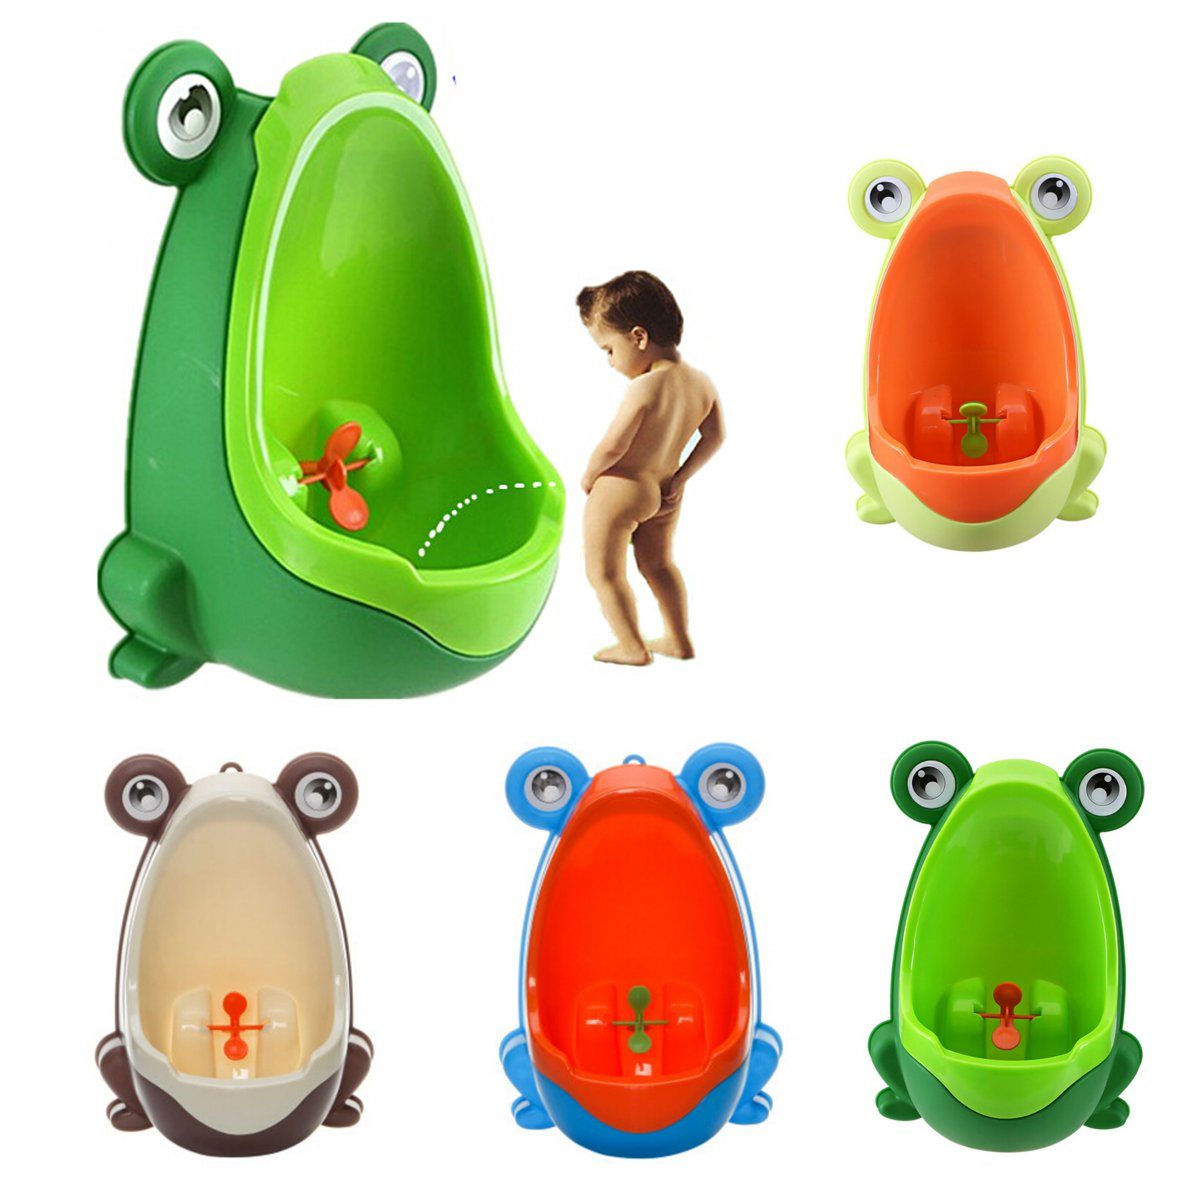 Cute Frog Potty Toilet Training Urinal for Boys Children Toddler Baby with Funny Aiming Pee Target  sc 1 st  Walmart & Potties u0026 Seats - Walmart.com islam-shia.org